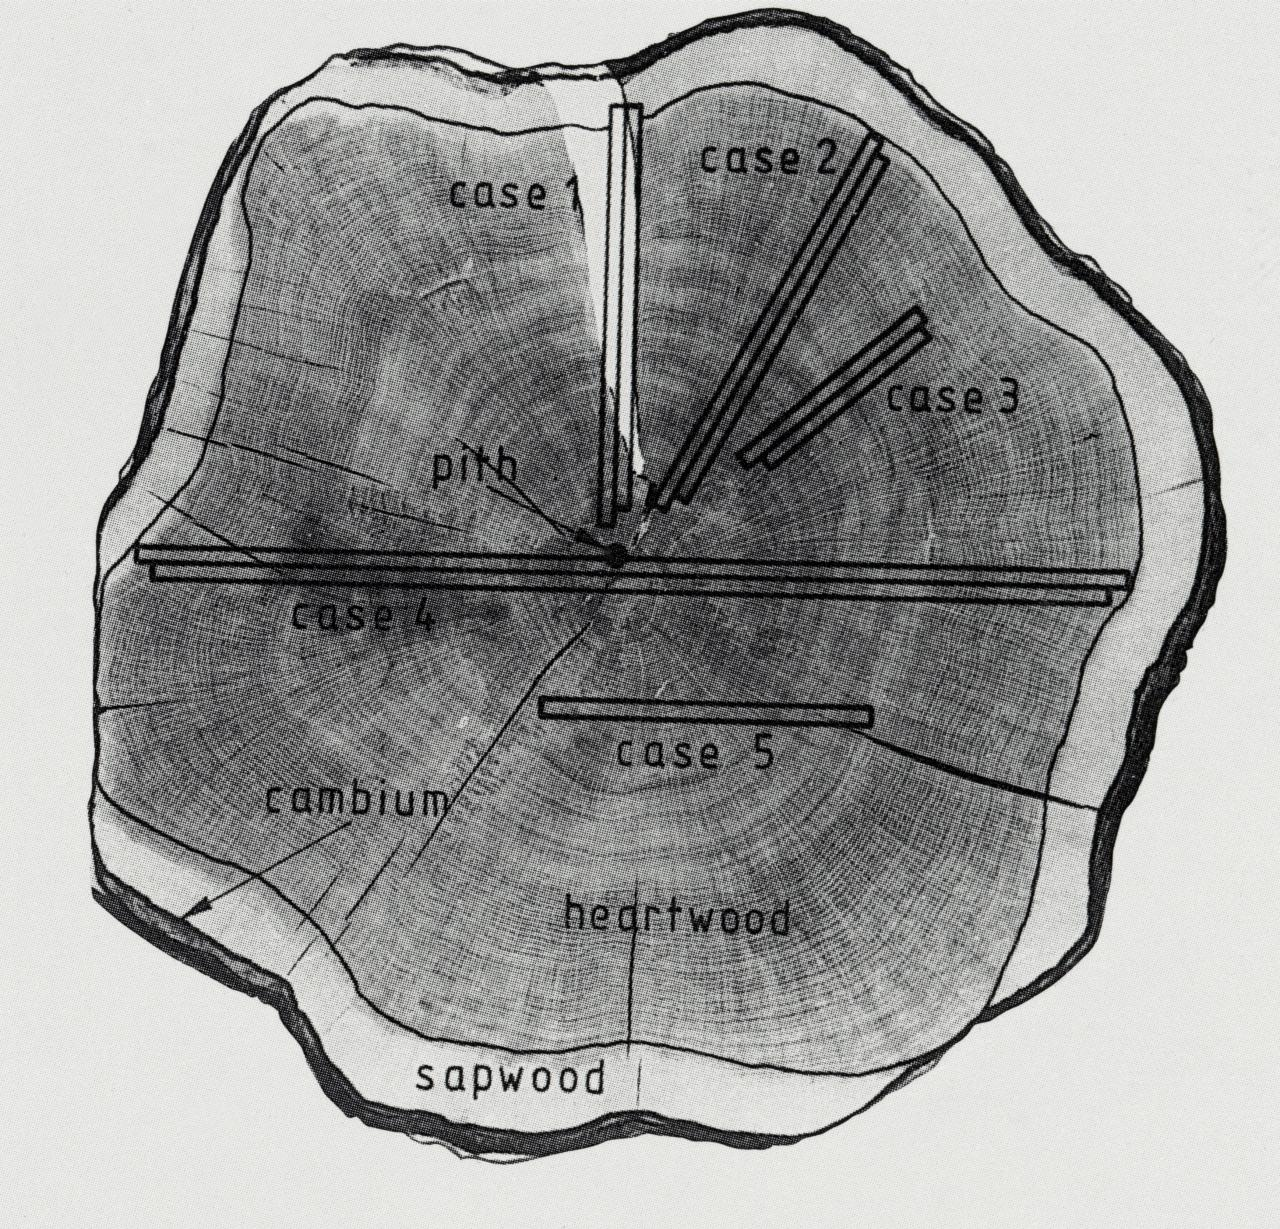 Dendrochronology is a method of dating by using